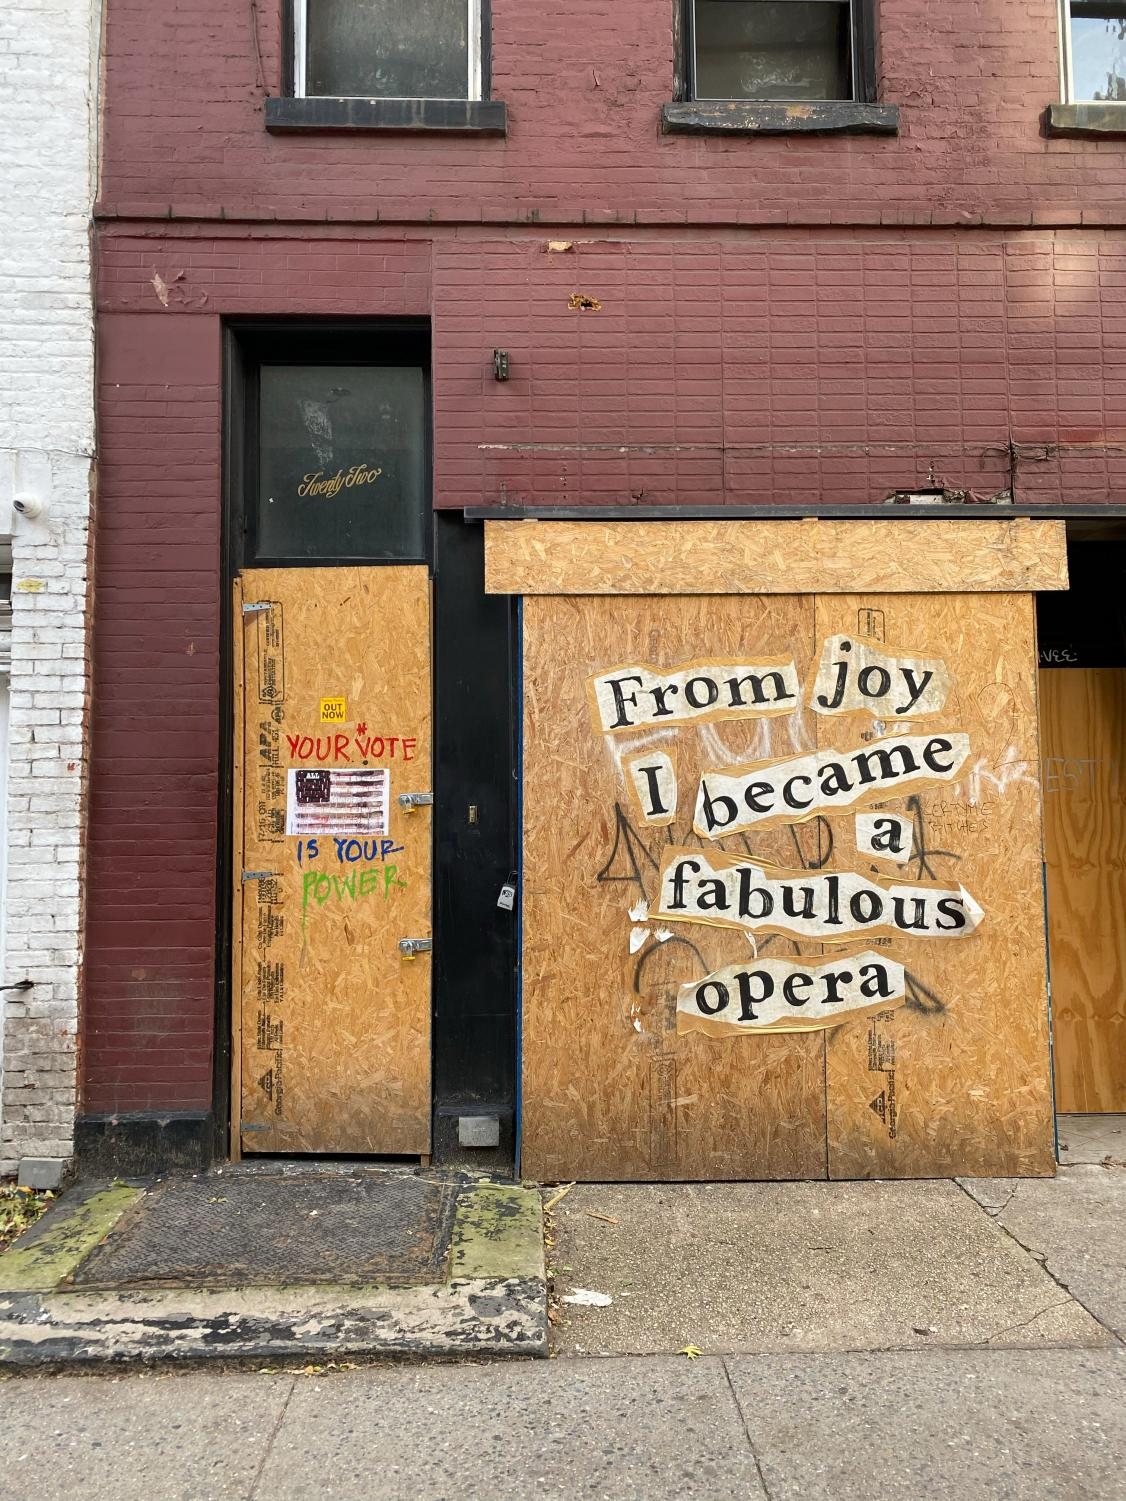 """A boarded up building with the phrase """"From joy I became a fabulous opera"""" stickered on the boards"""